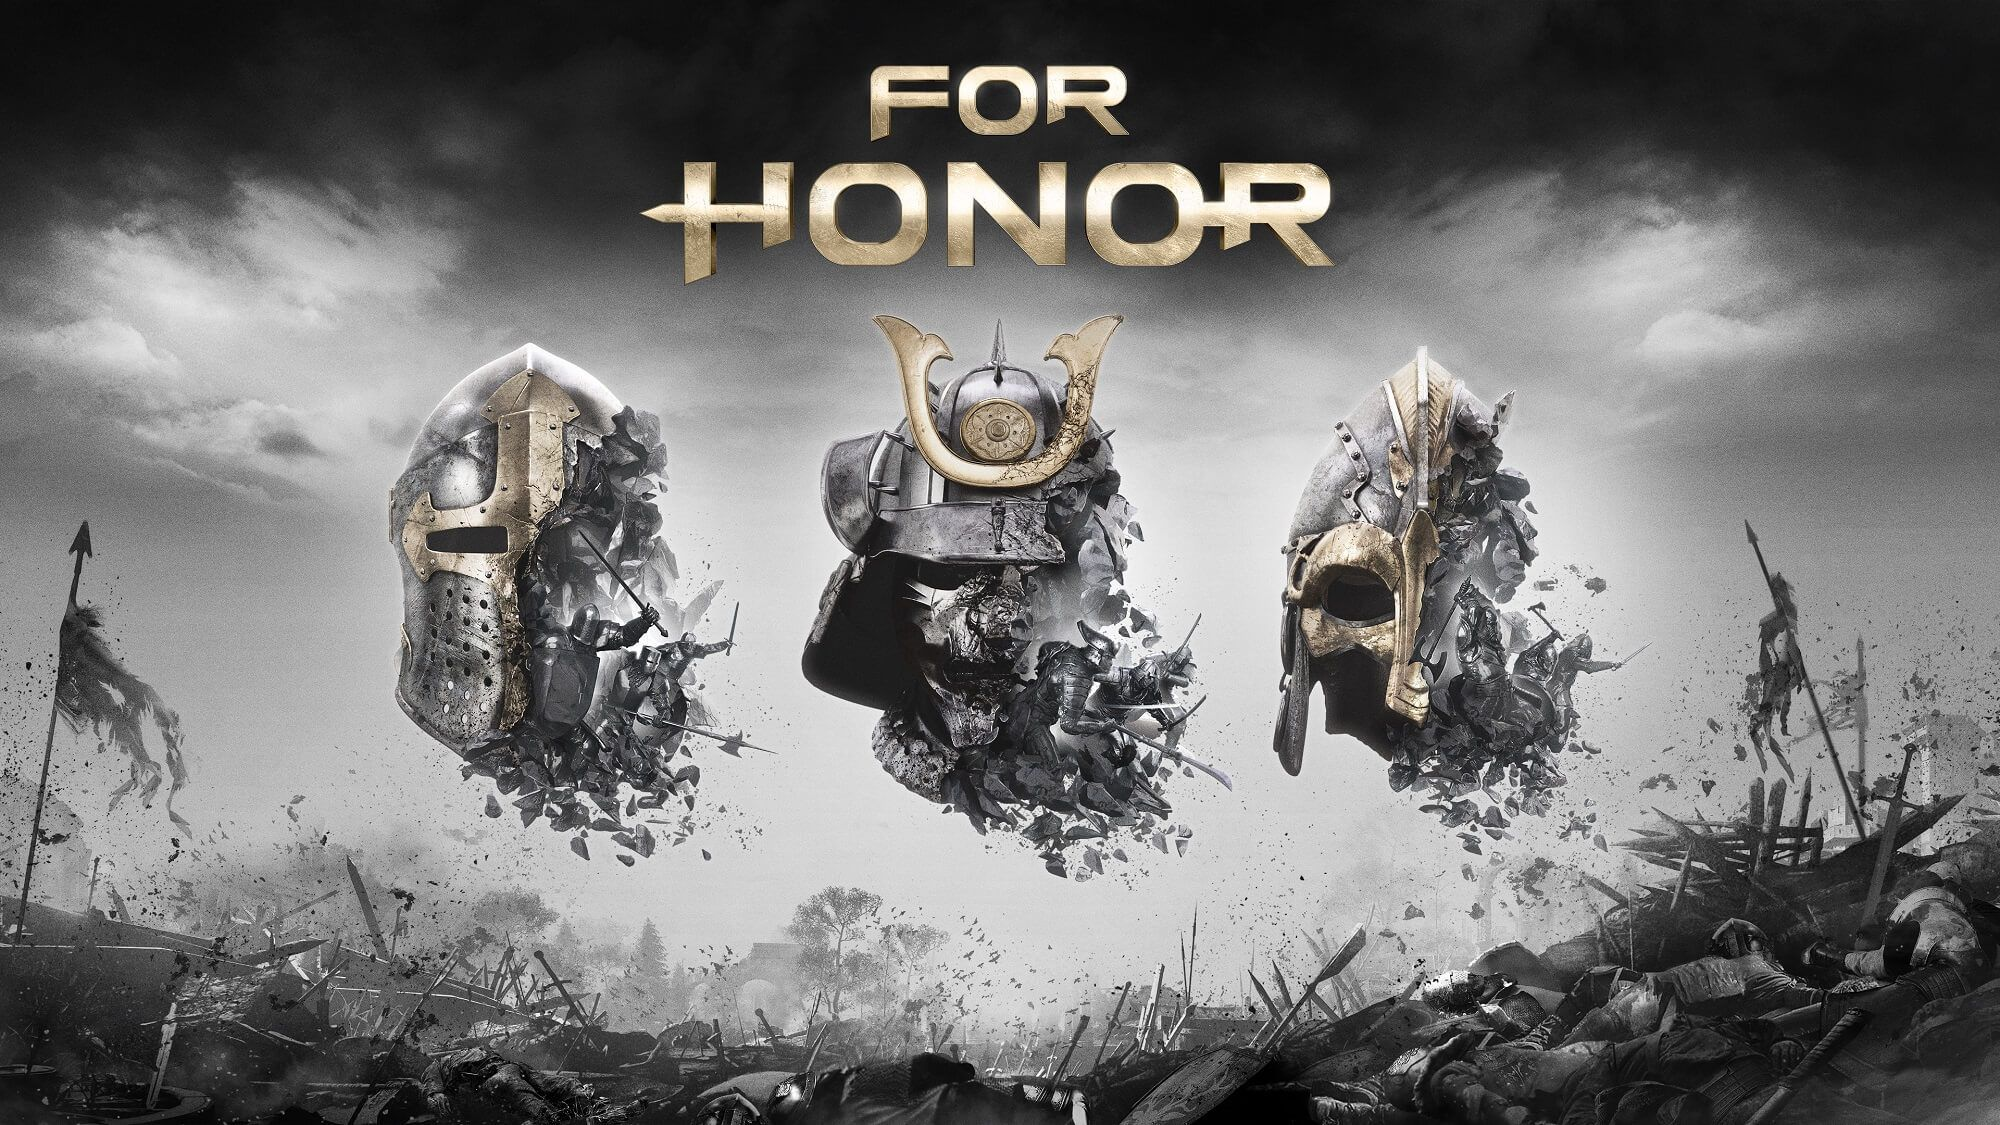 For Honor Details Art And Screenshots Medieval Games For Honour Game Honor